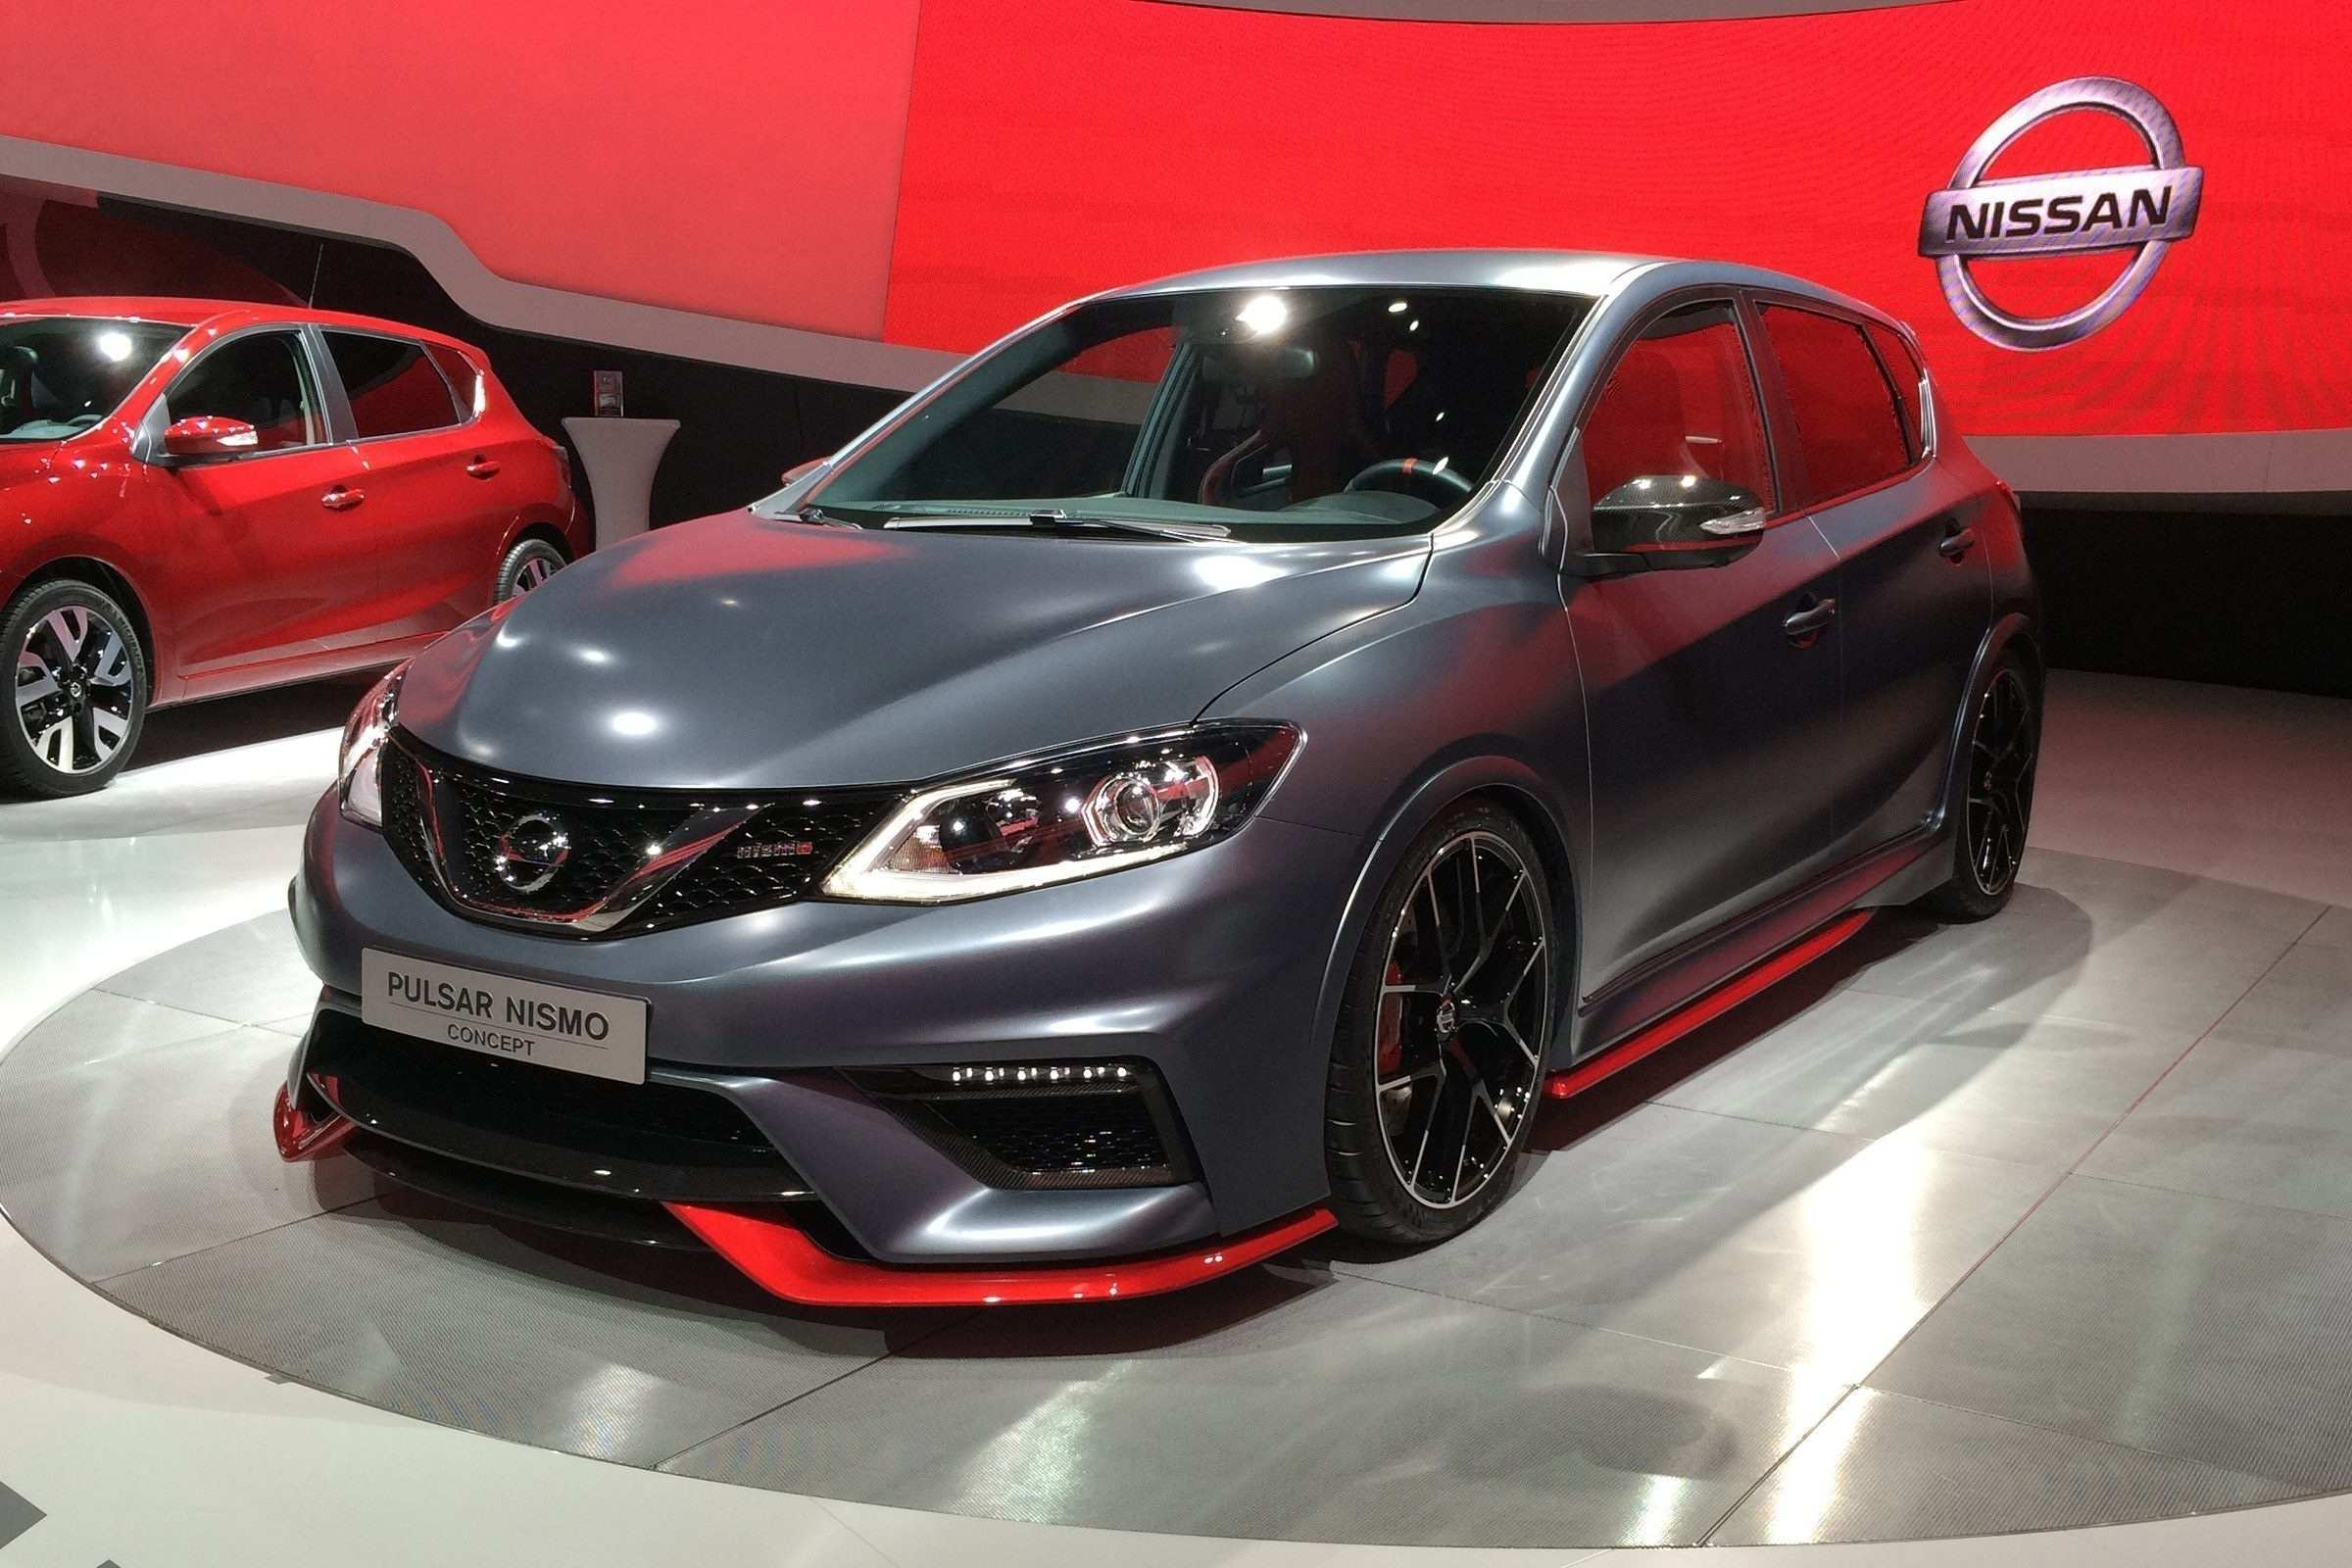 99 A 2019 Nissan March Mexico Columbia Review